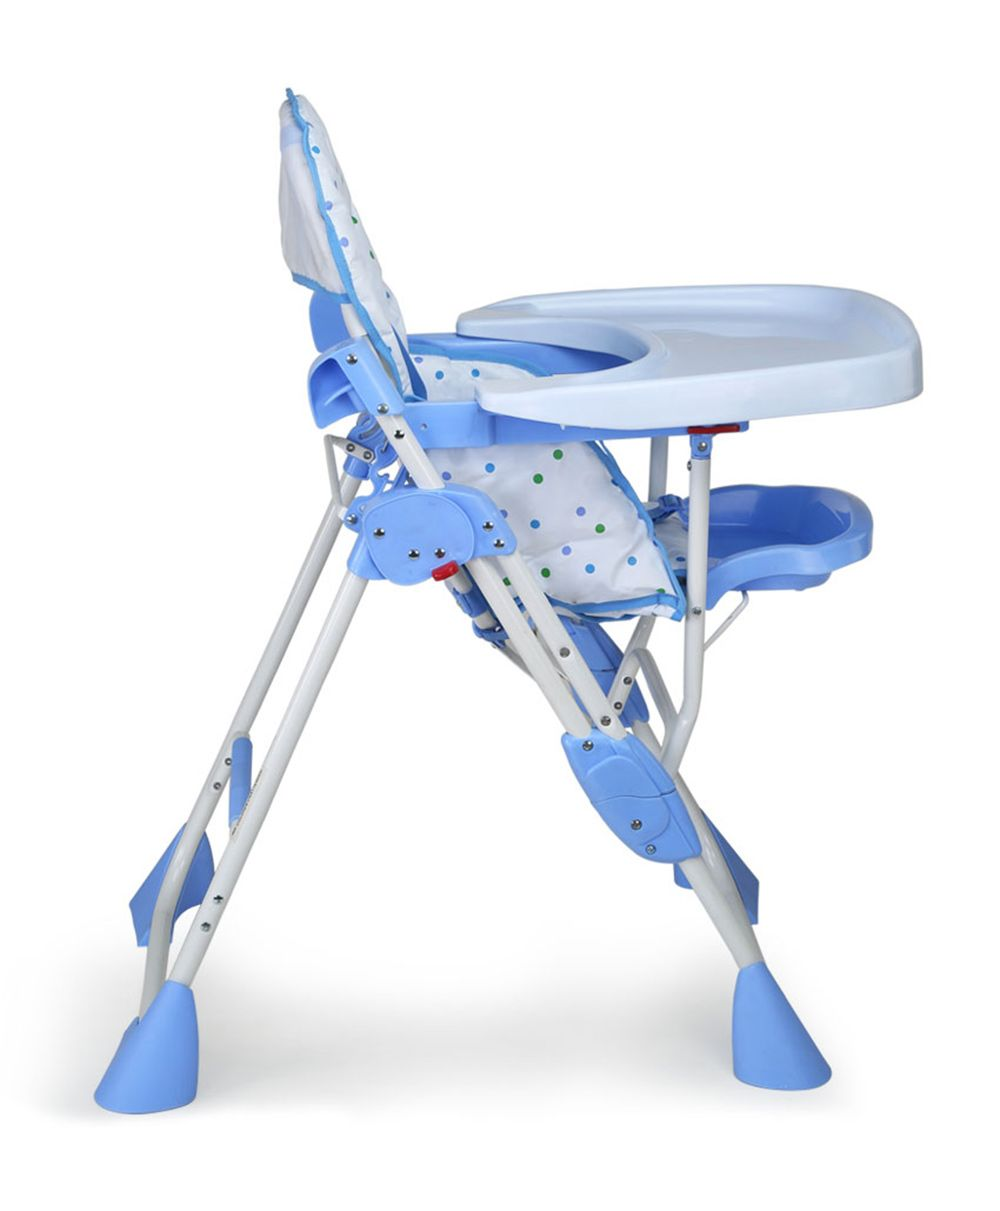 Luv Lap Baby Comfy High Chair (Blue)